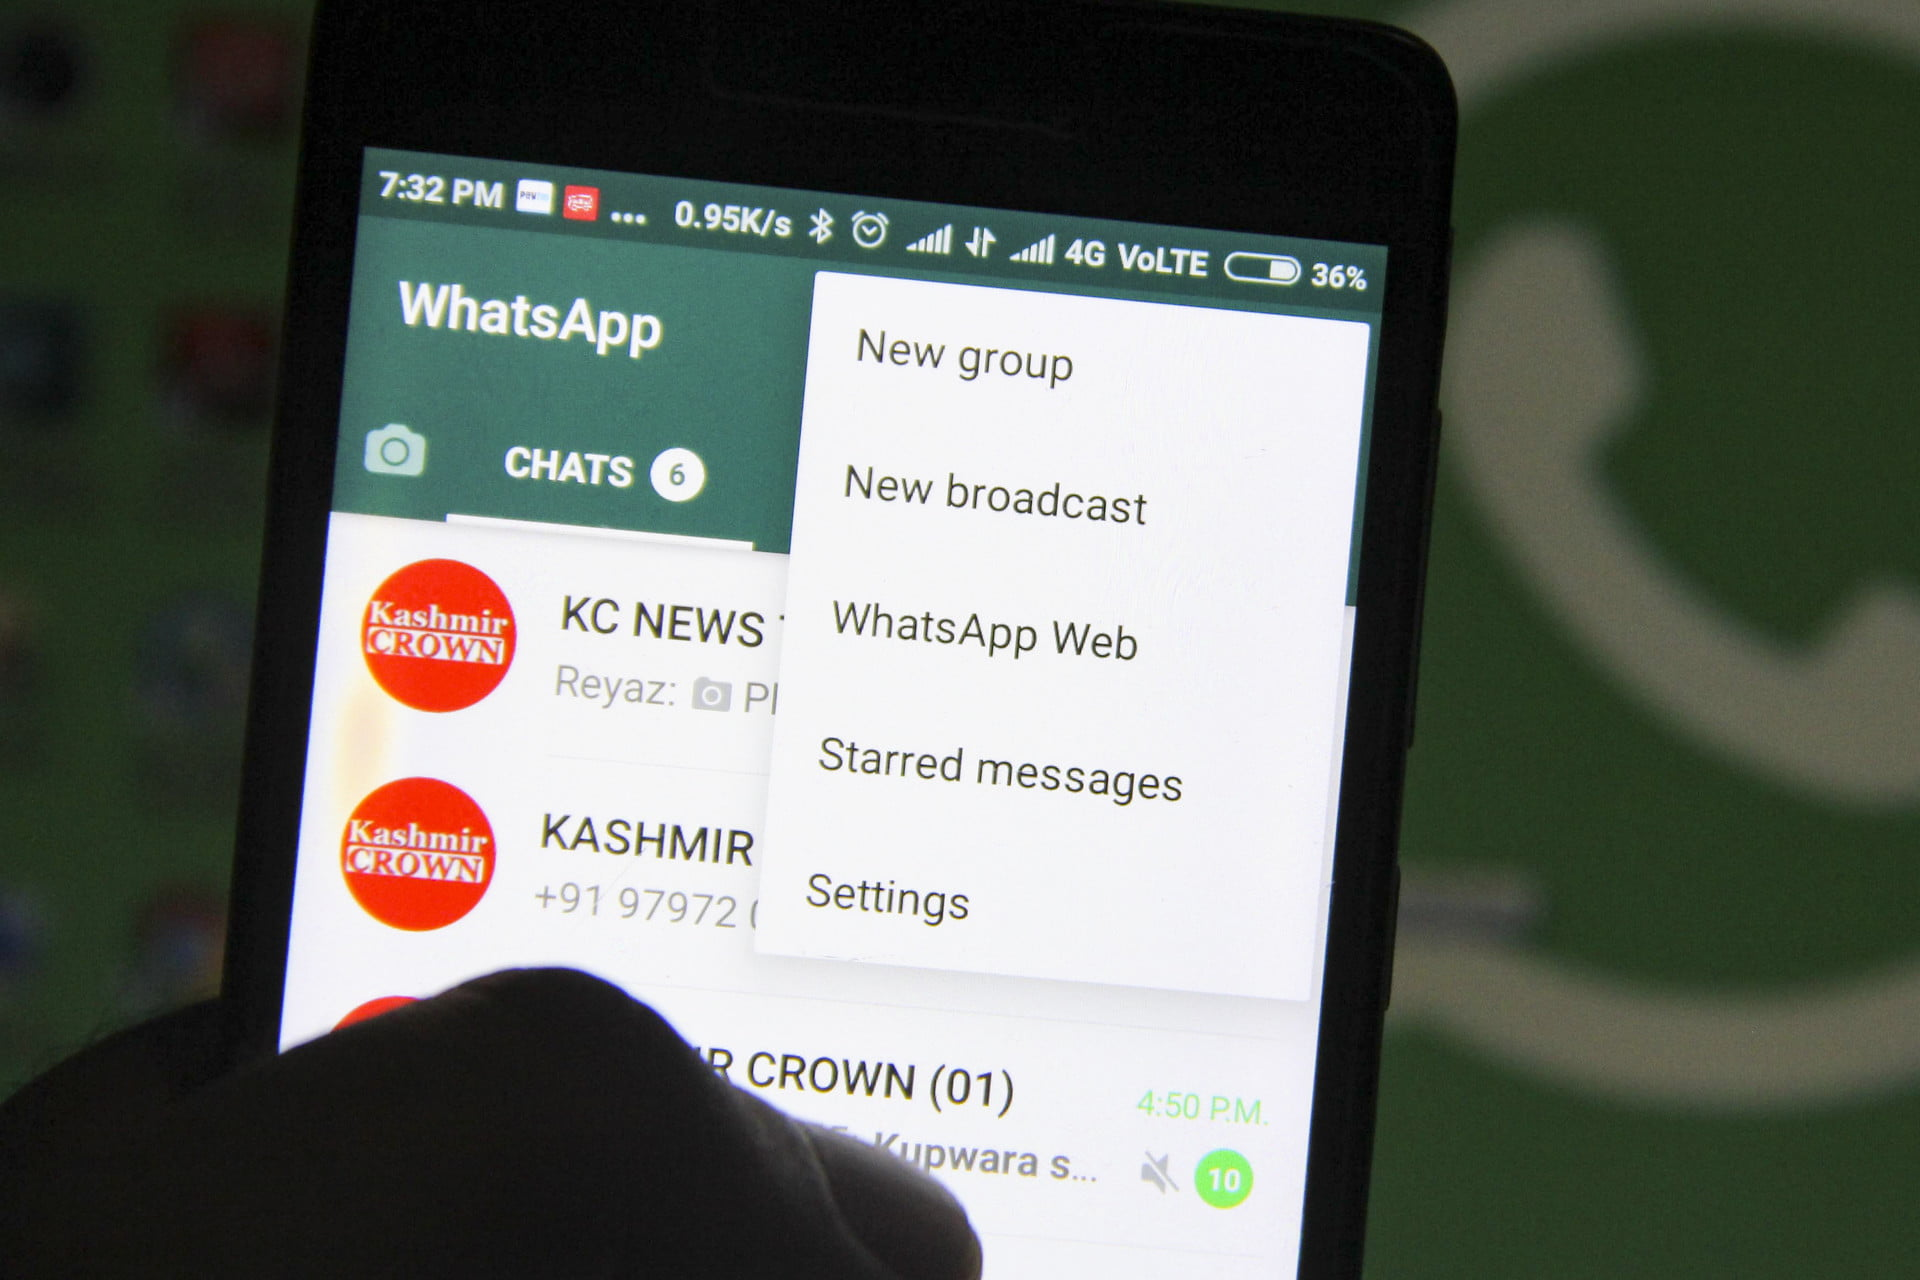 WhatsApp Has 400 Million Users In India, But No Fix For Its Fake